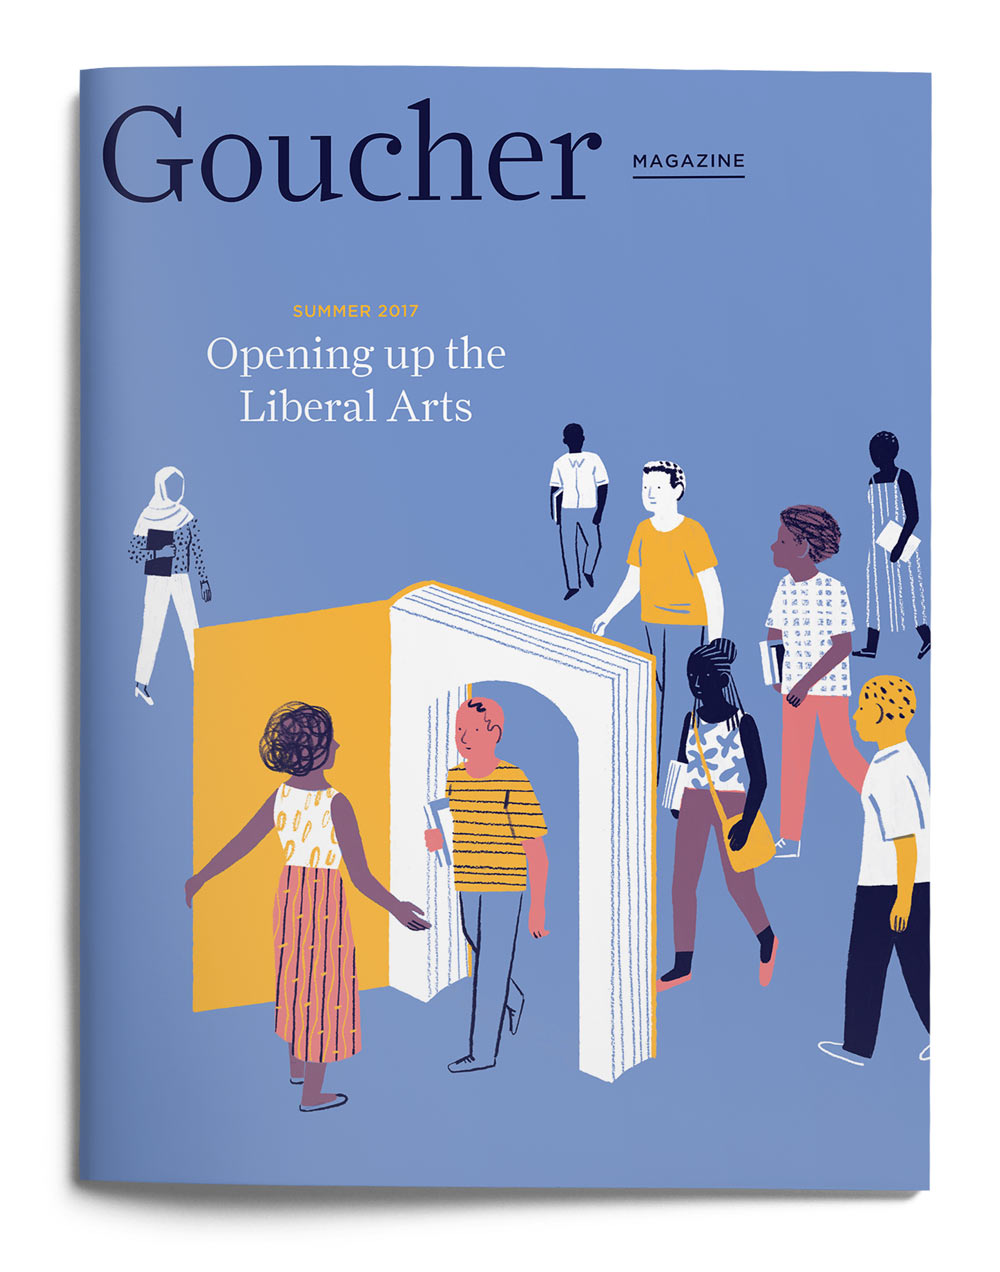 Goucher.Covers_3_c.jpg